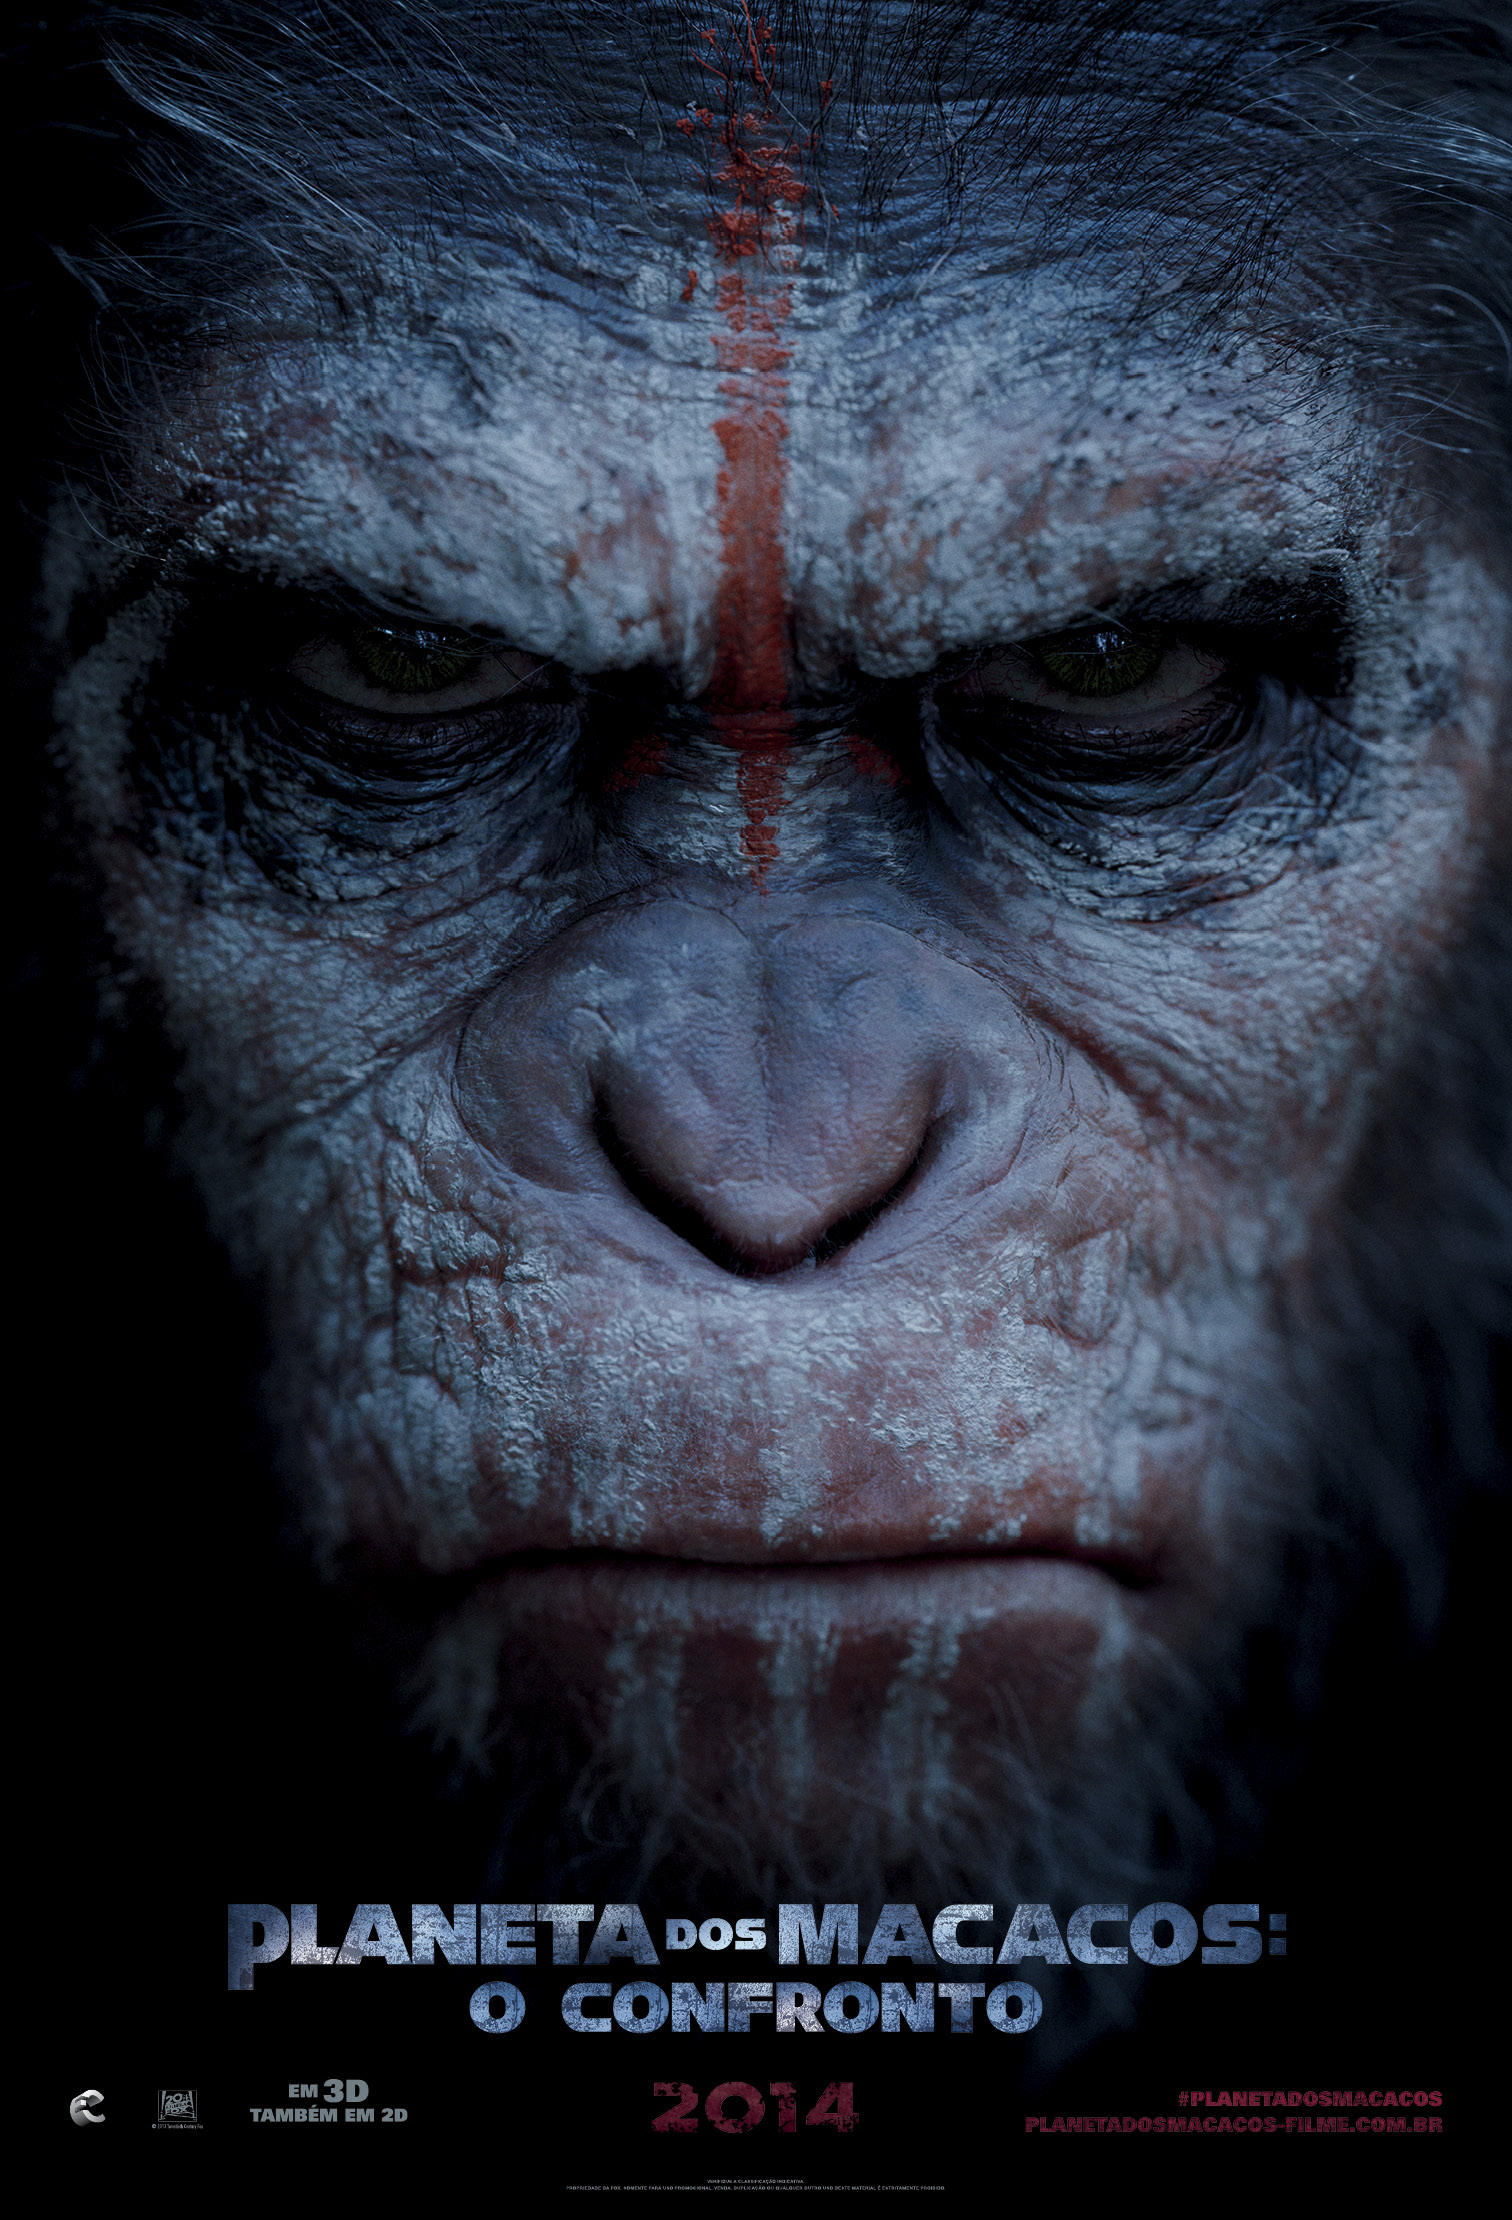 DAWN OF THE PLANET OF THE APES-Official Poster Banner PROMO NACIONAL-21DEZEMBRO2013